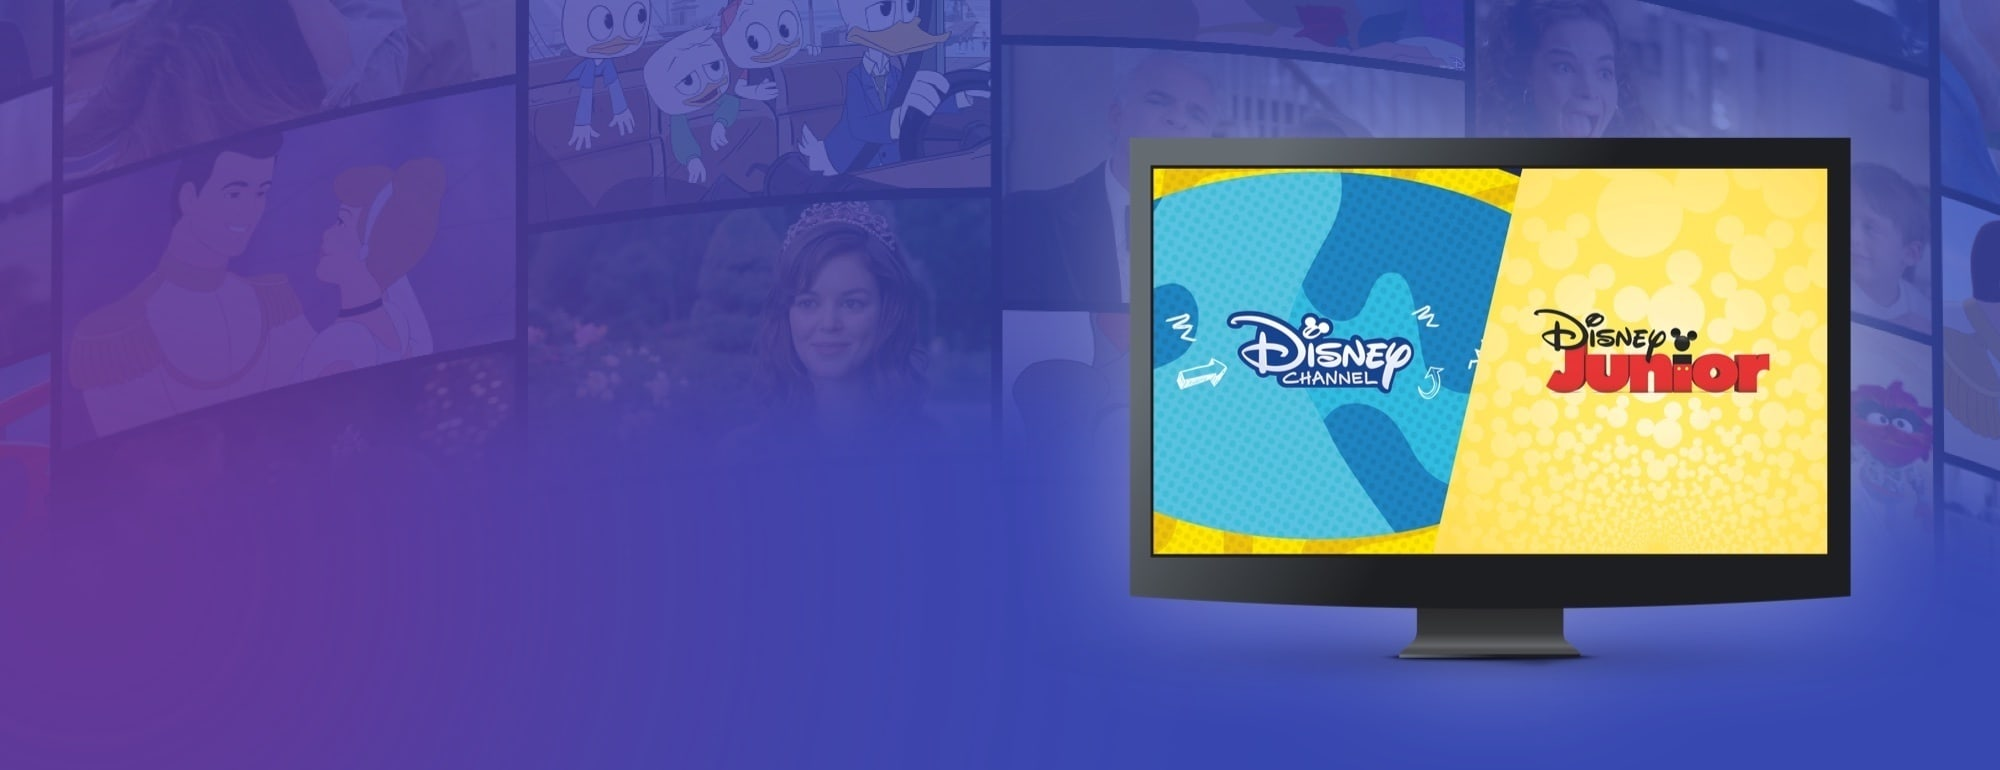 Disney Media Sales & Partnerships | Disney Television Channels